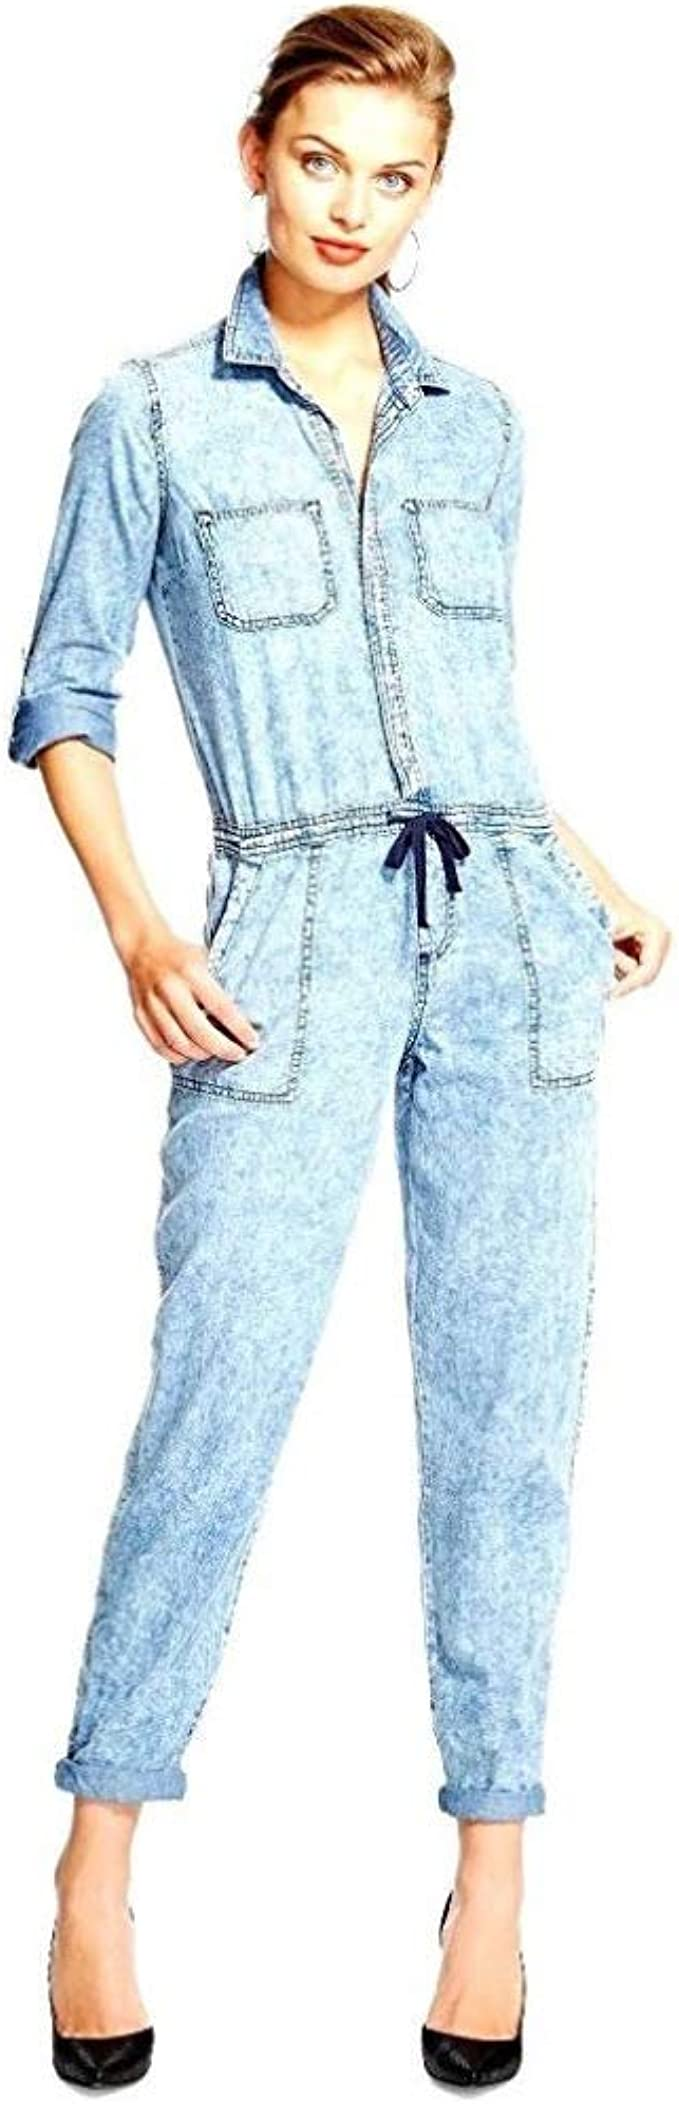 Roll Sleeve Drawstring Waist Light Denim Blue Jumpsuit Rompers | Stylish Denim Fashion for Women